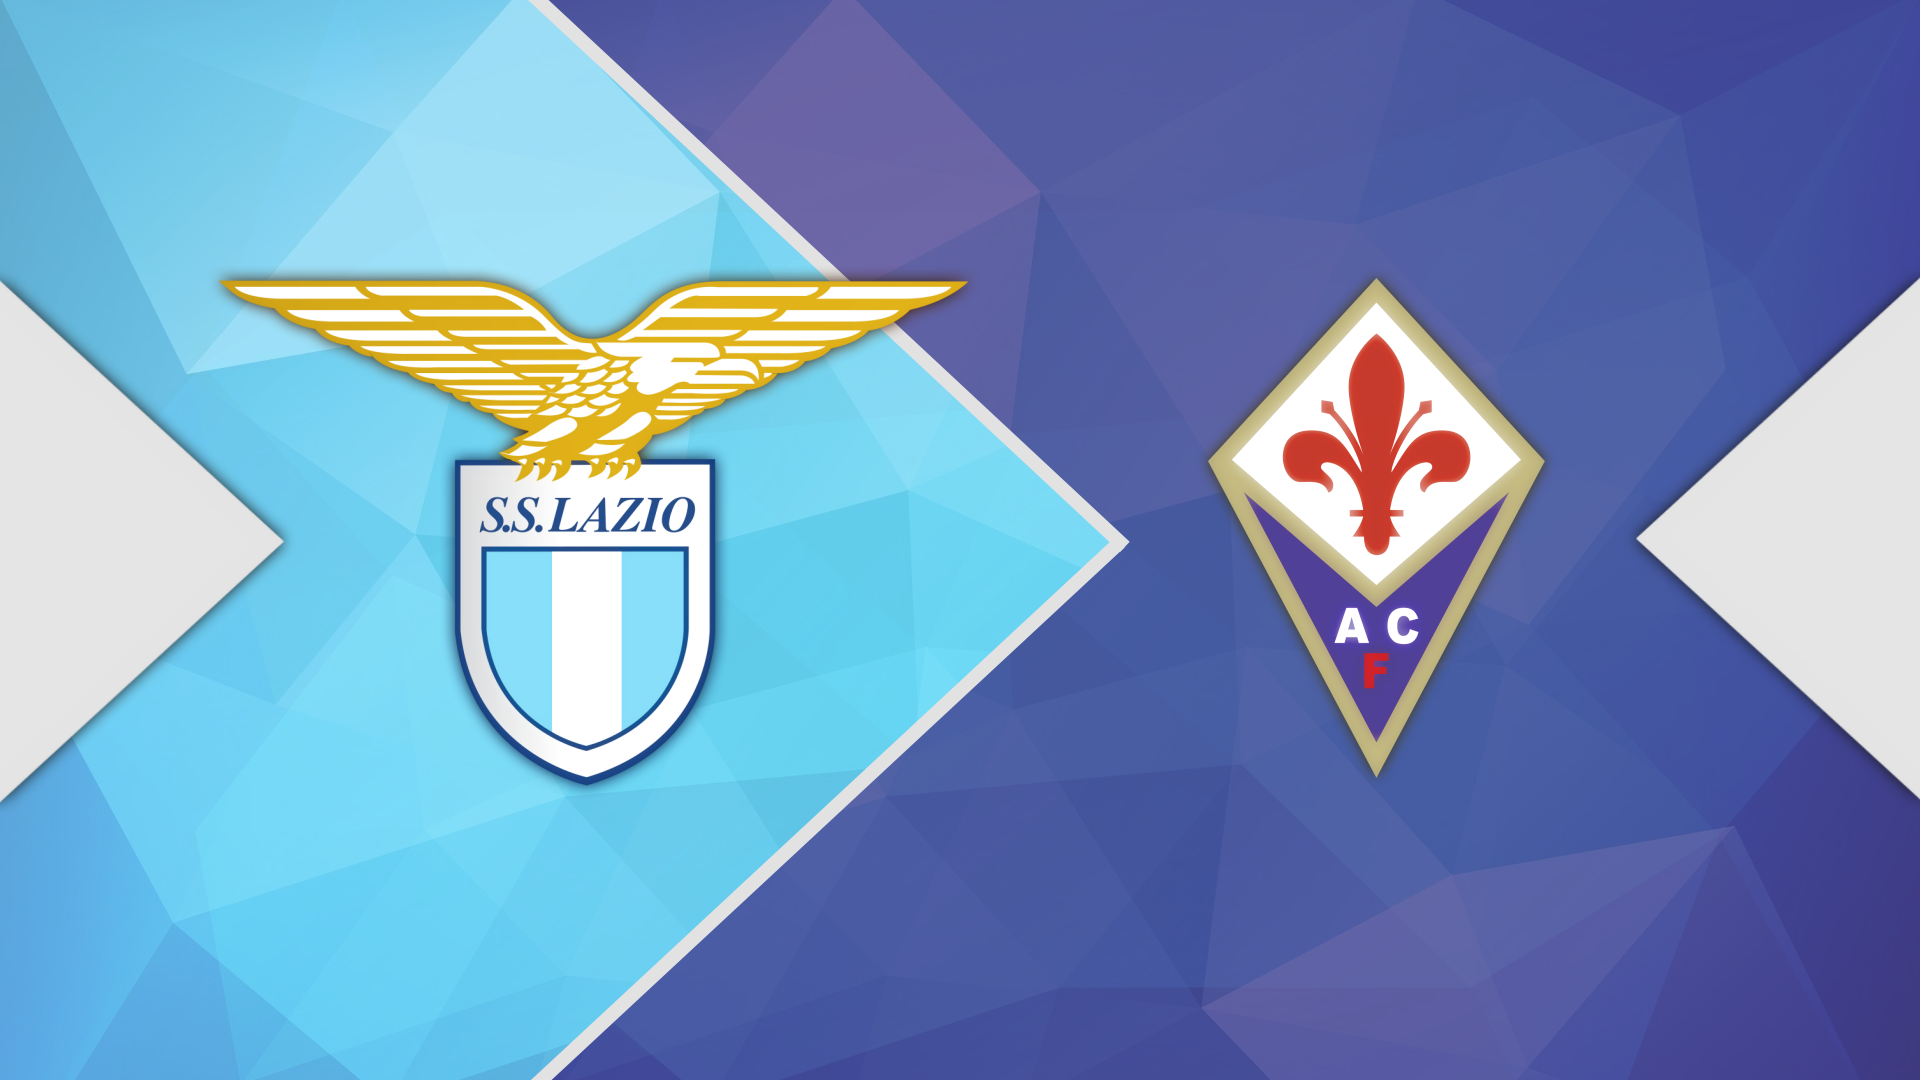 Fiorentina v lazio betting tips hottest 100 voting betting online